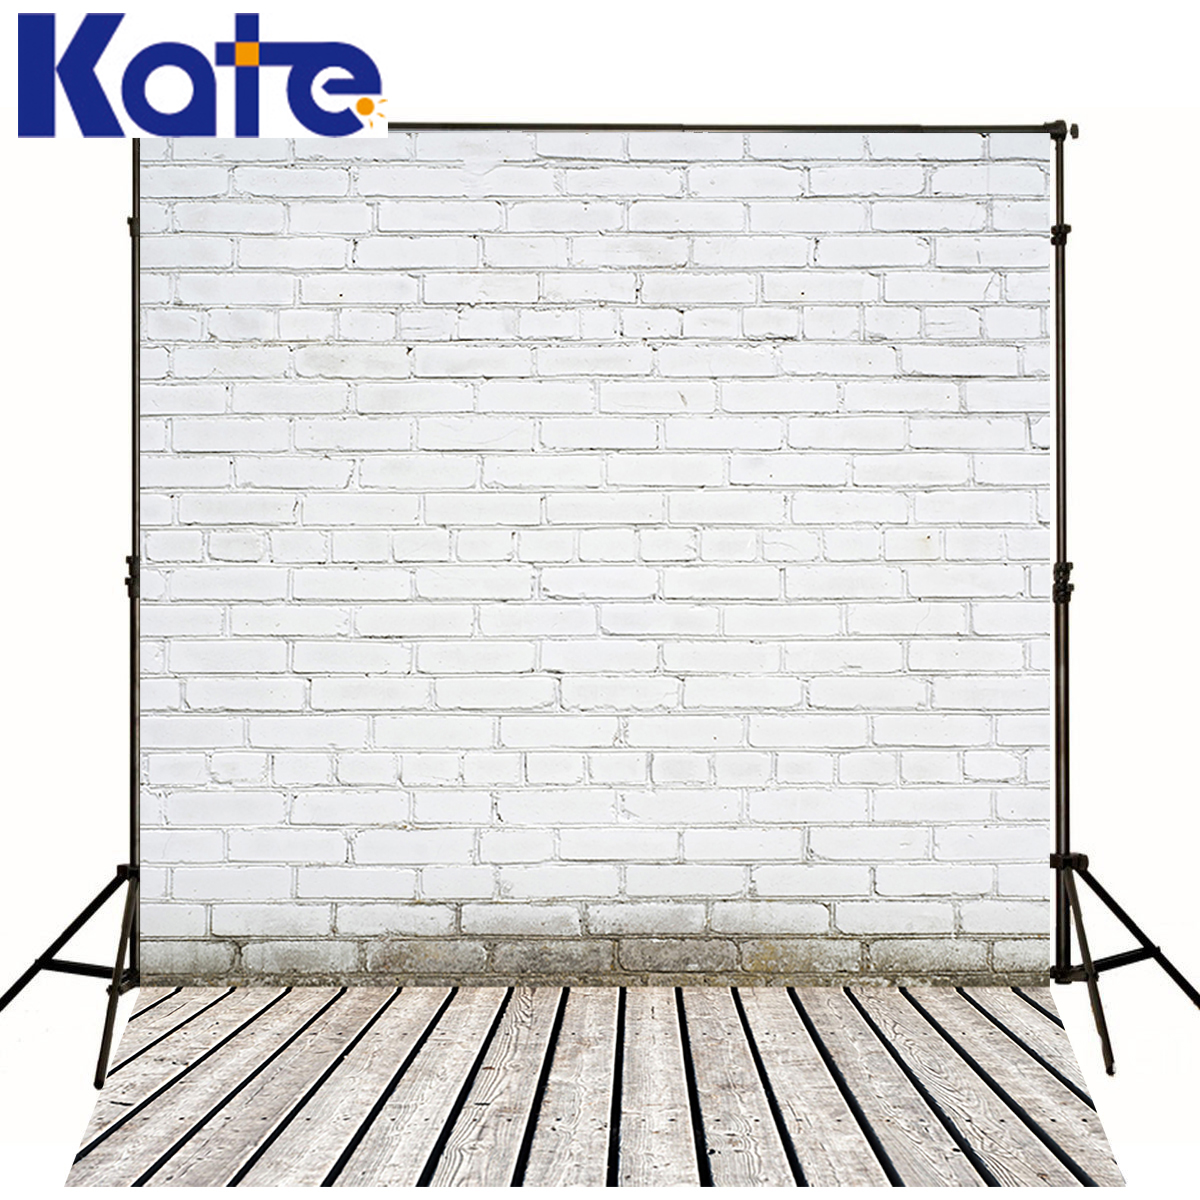 Kate Newborn Baby Photography Backgrounds White Brick Wall Foto Achtergrond Kerst Wood Texture Floor Backdrop For Photo Studio